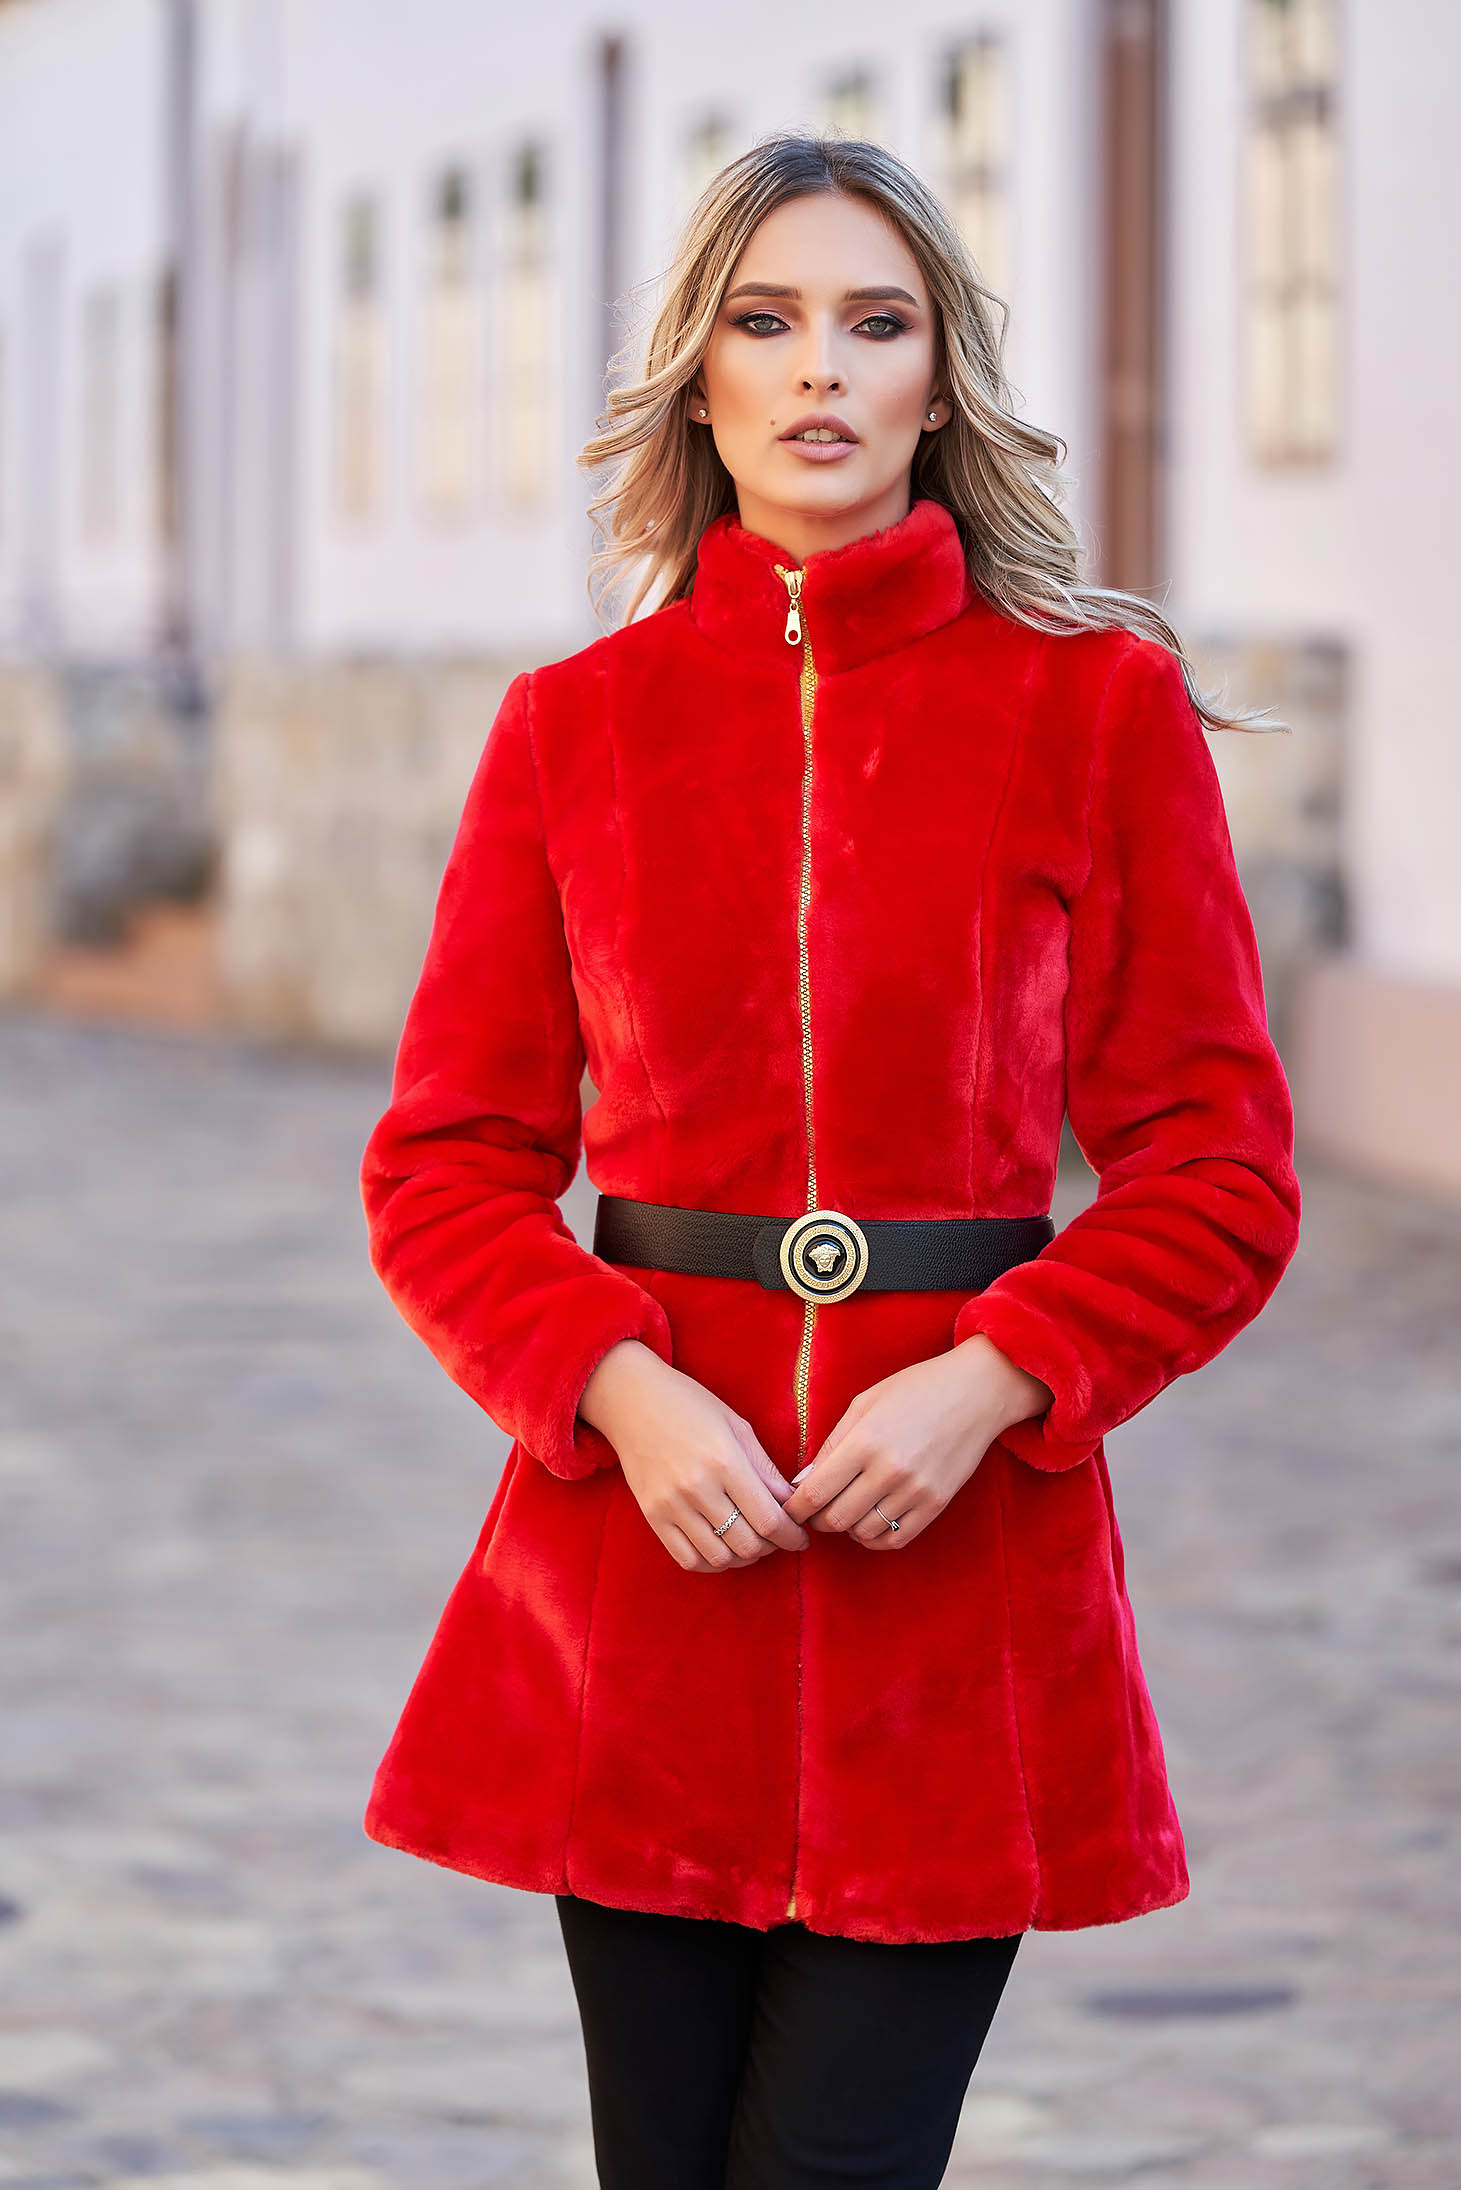 Red ecological fur with inside lining accessorized with belt